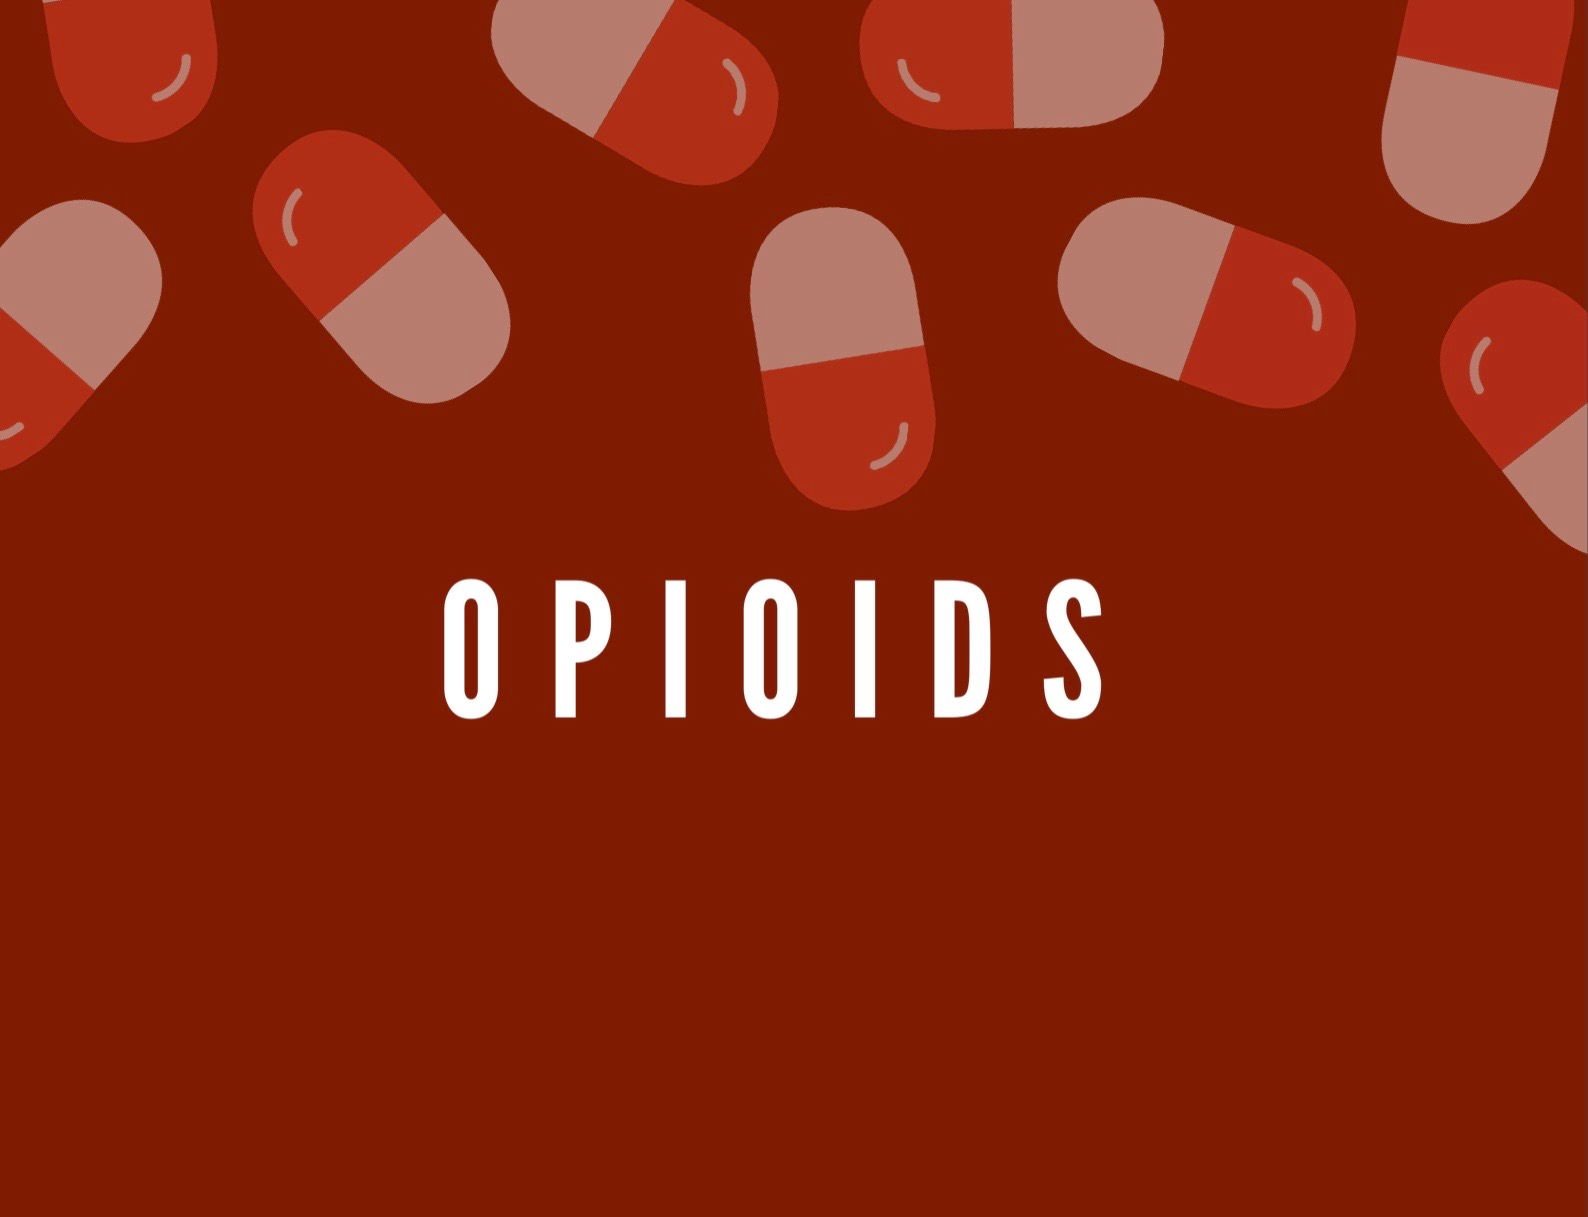 Untold Stories of Addiction: Opioids